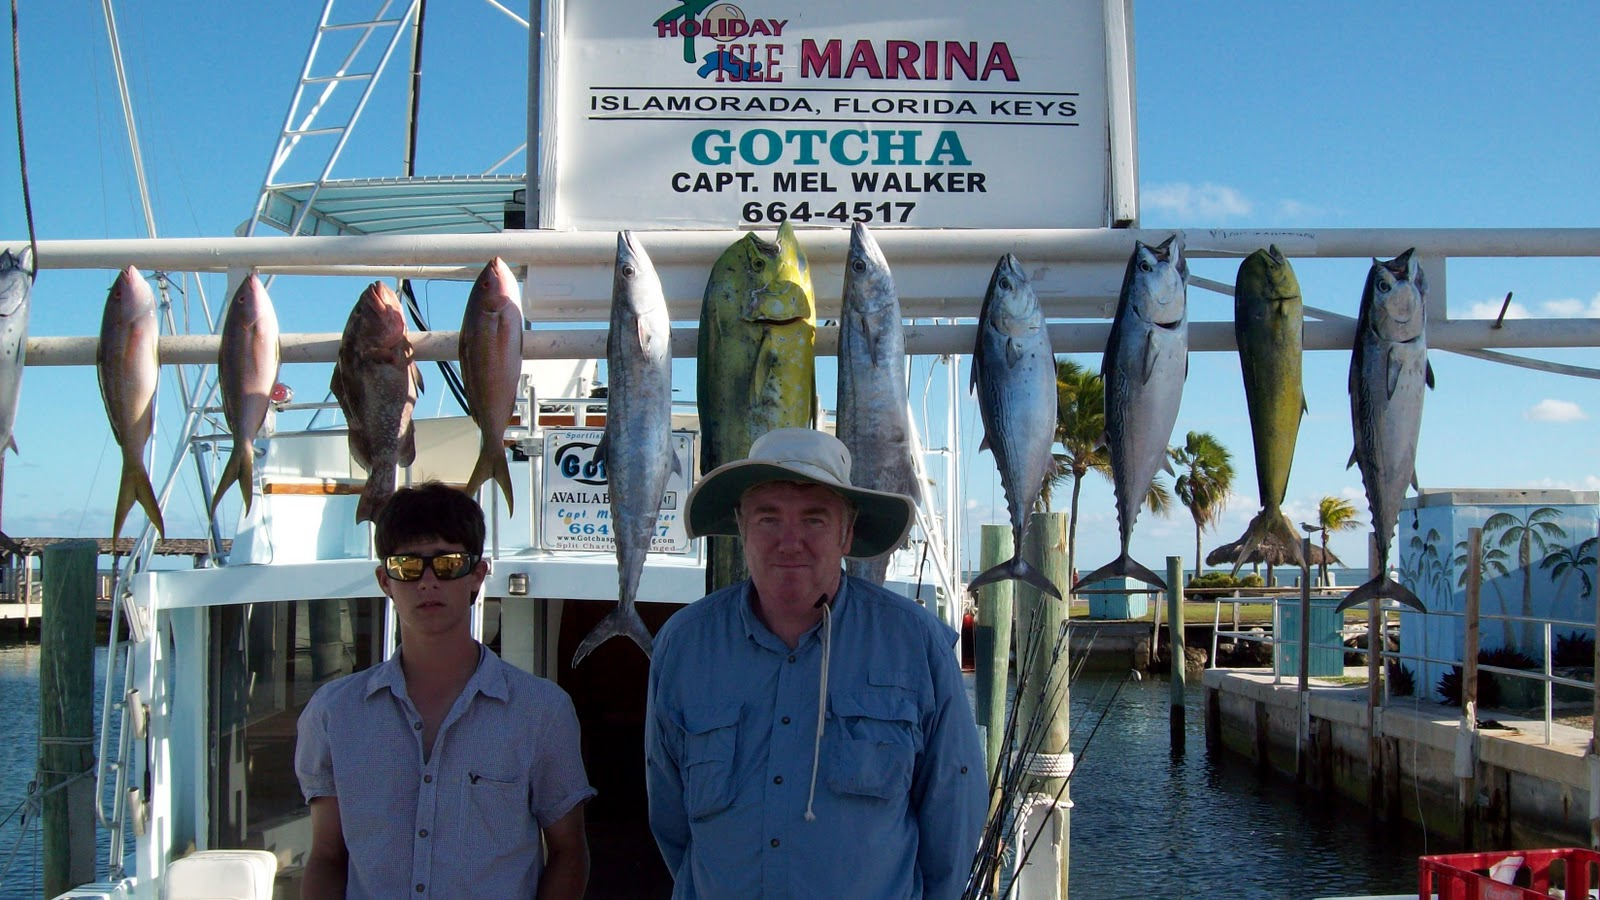 Craig Conway and Grant Meiring from Edgewater, FL had a good catch of fish ...